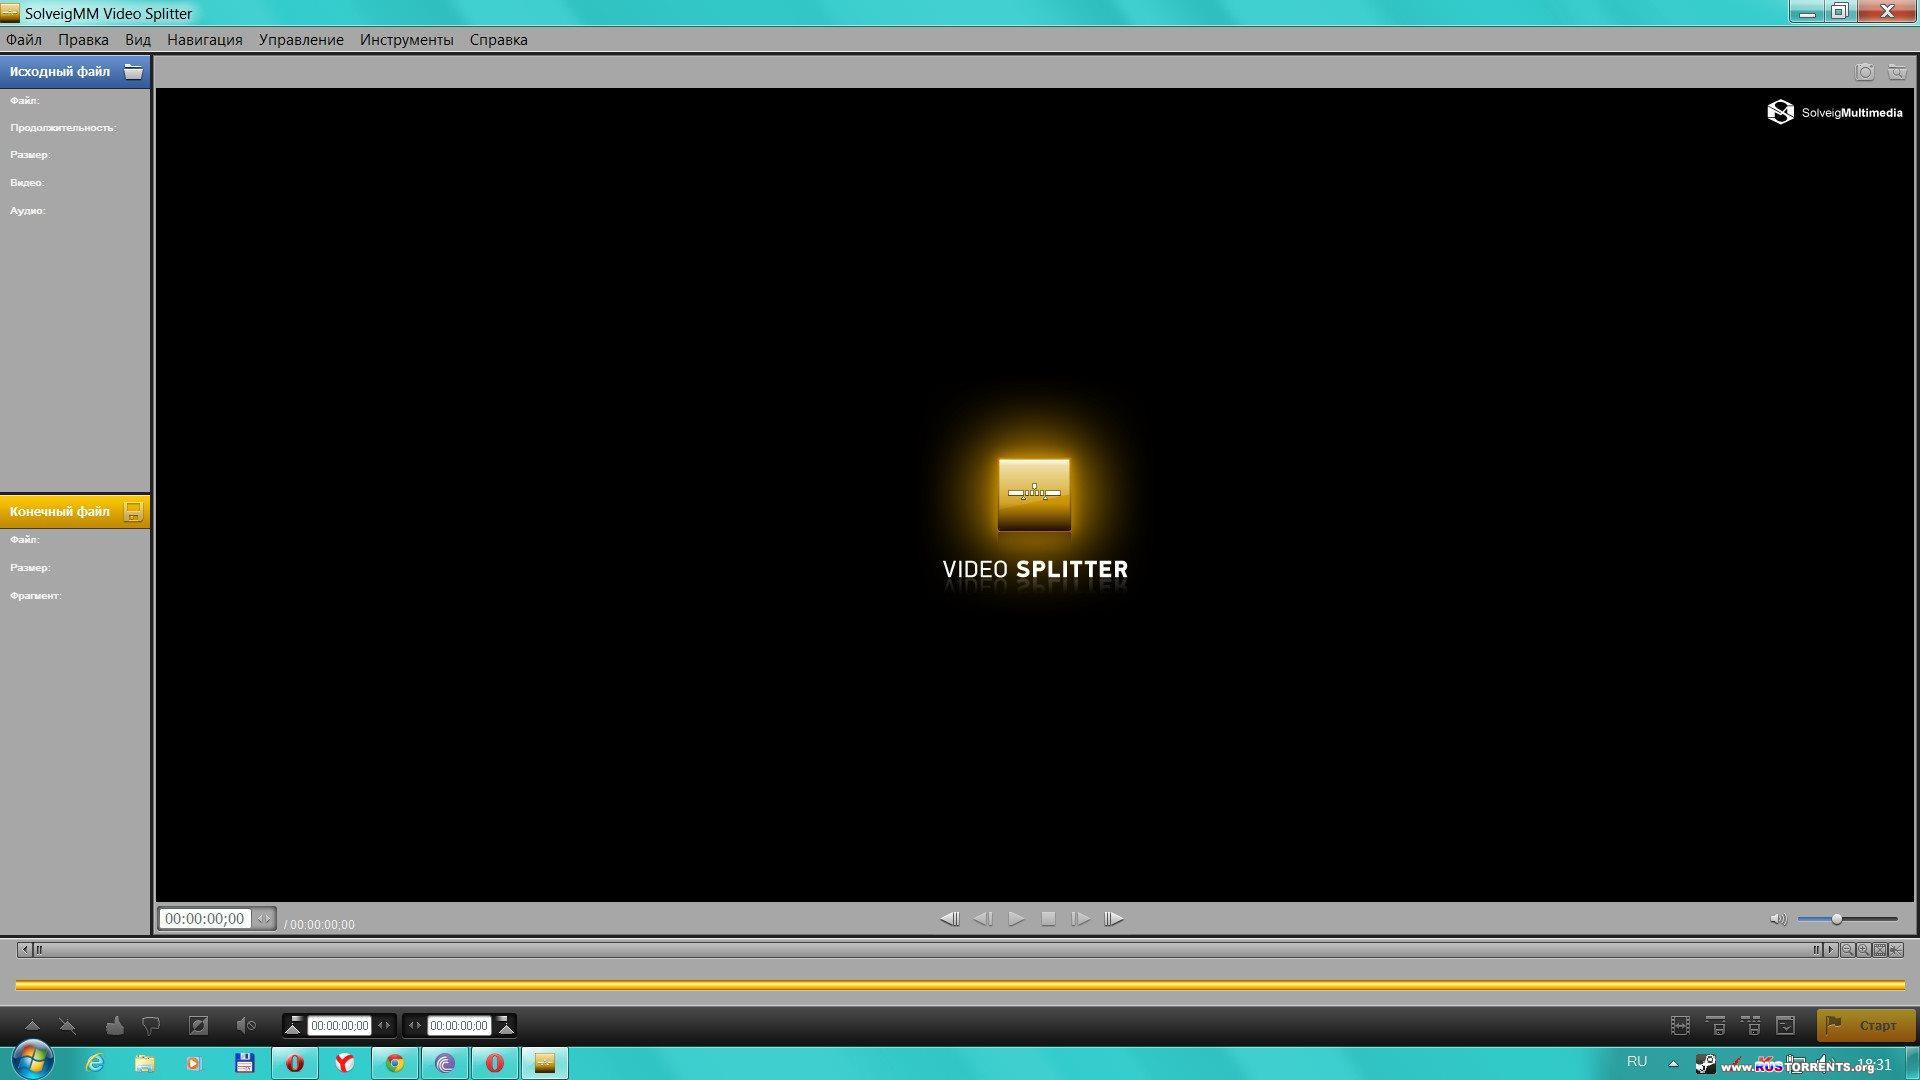 SolveigMM Video Splitter 3.7.1312.12 Final